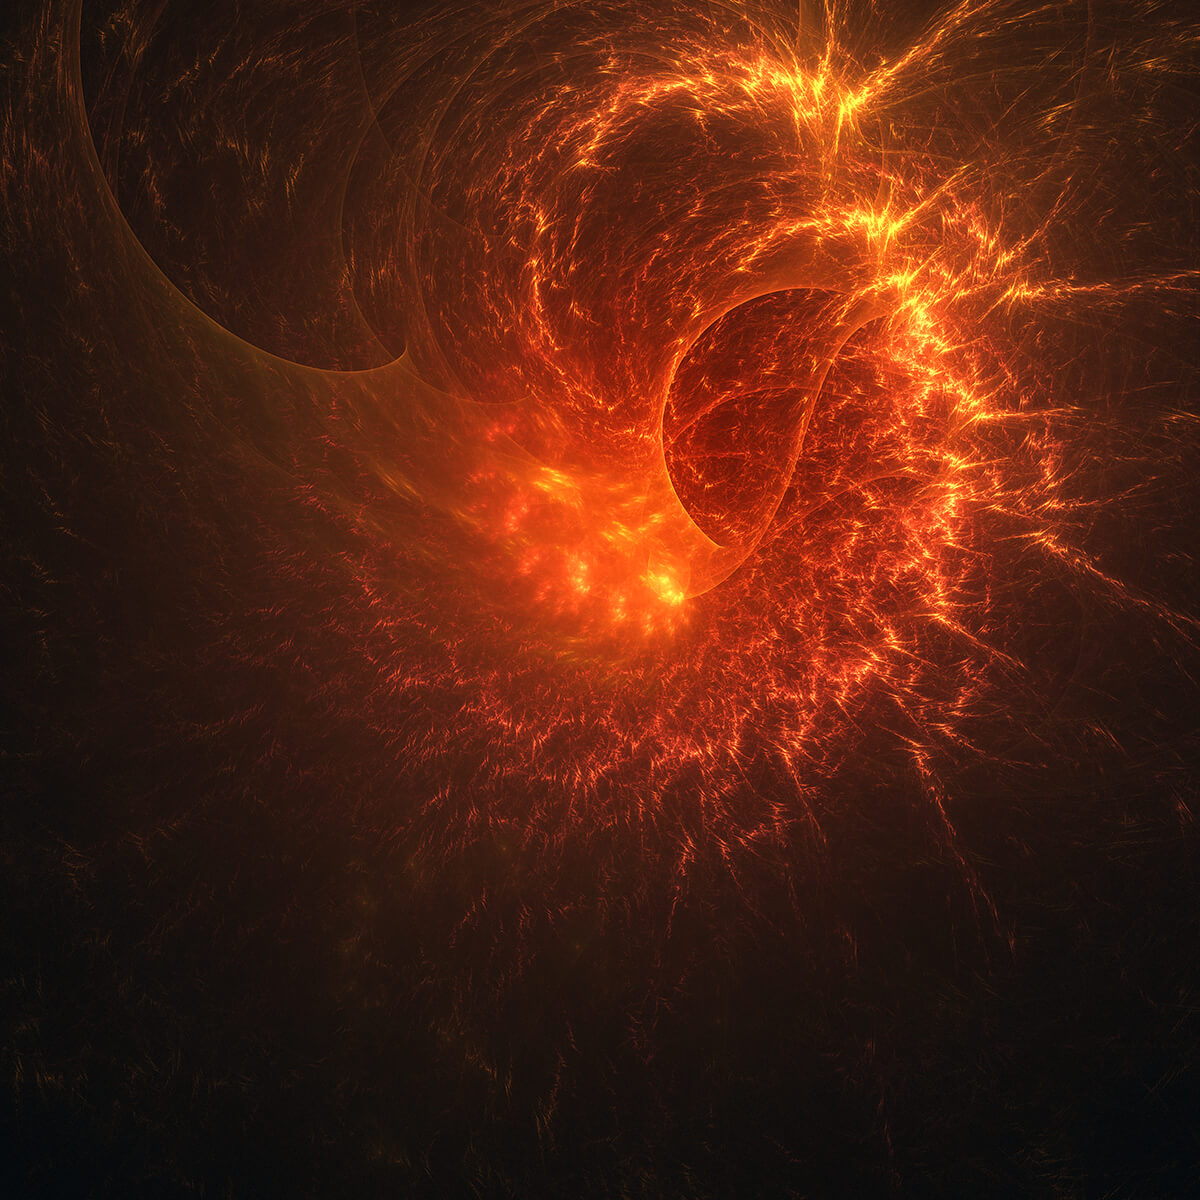 3D render of a burning event horizon of a black hole